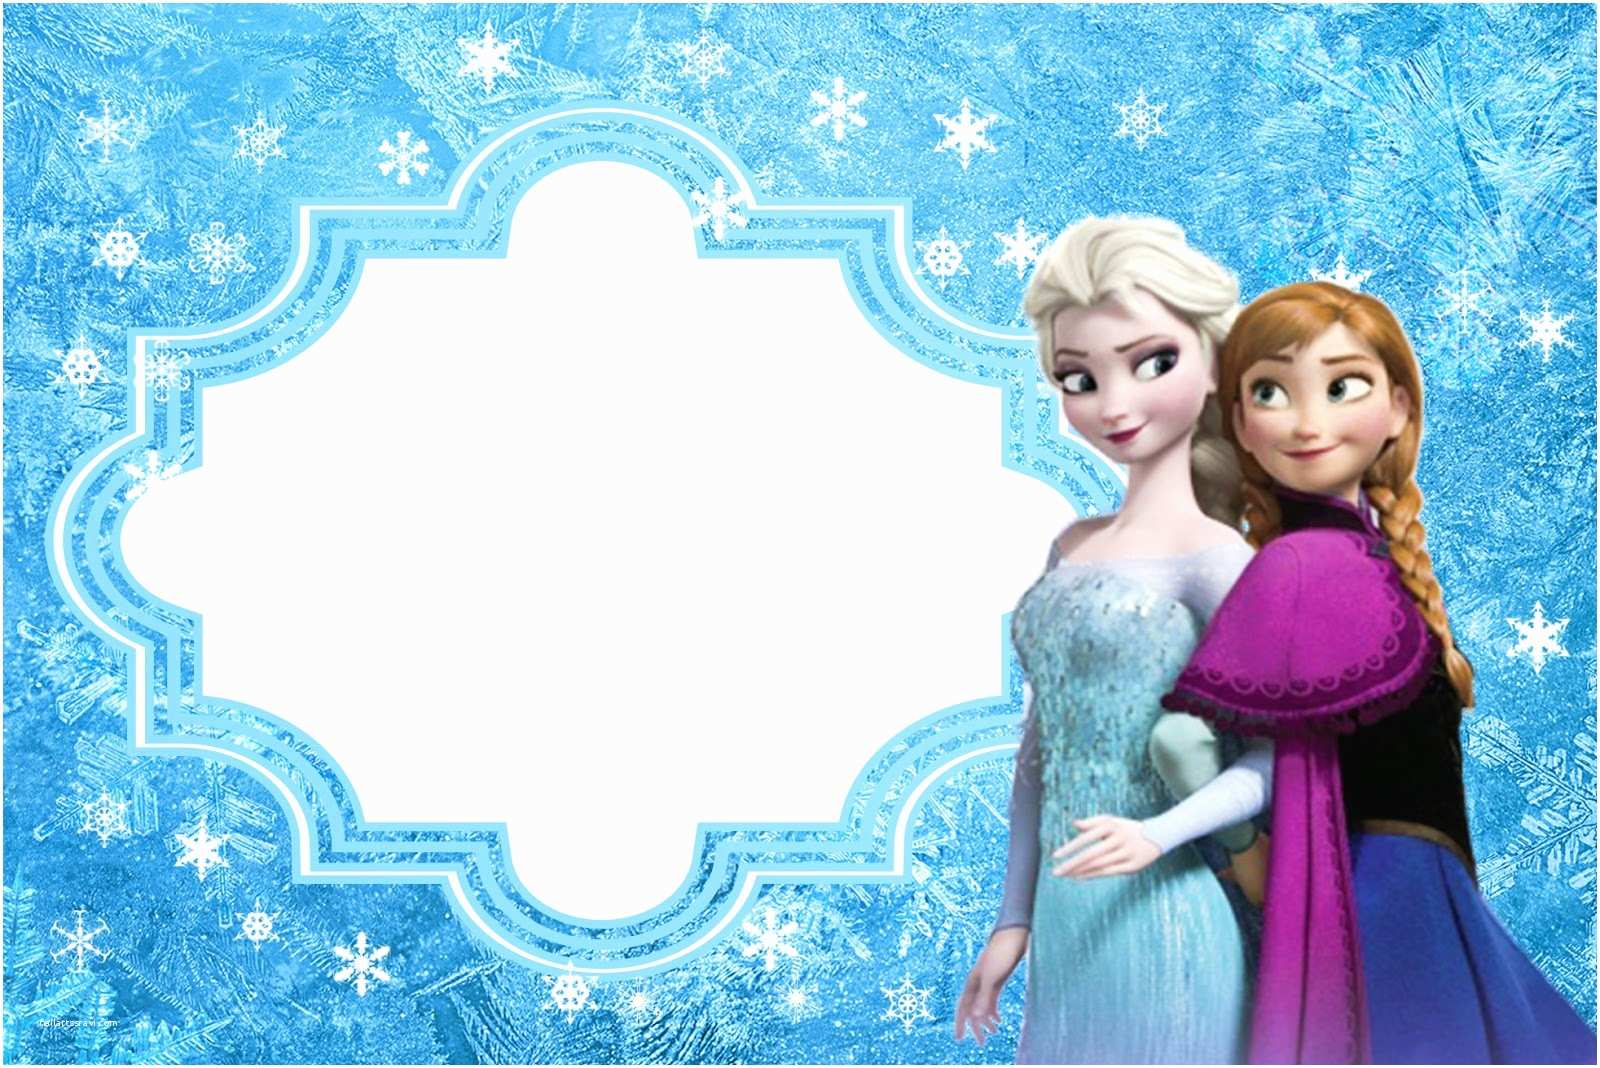 Frozen Birthday Invitations Frozen Free Printable Cards or Party Invitations